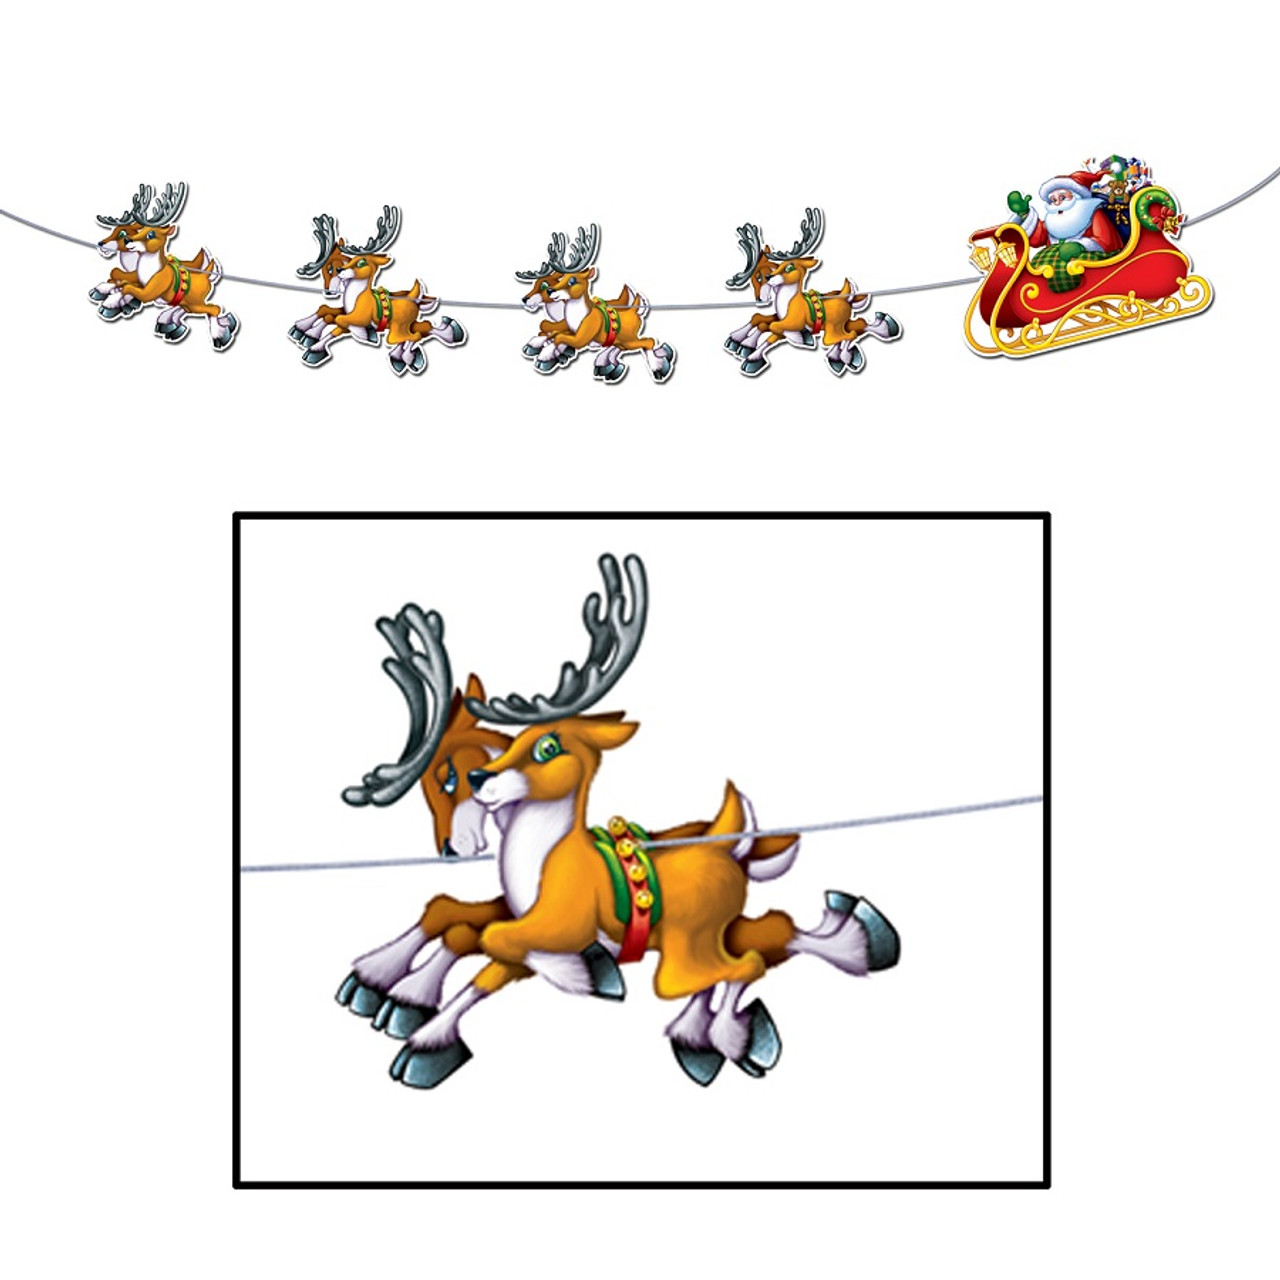 Pack of 12 Santa & Reindeer Jointed Streamer Christmas Decorations 8' | Christmas Central